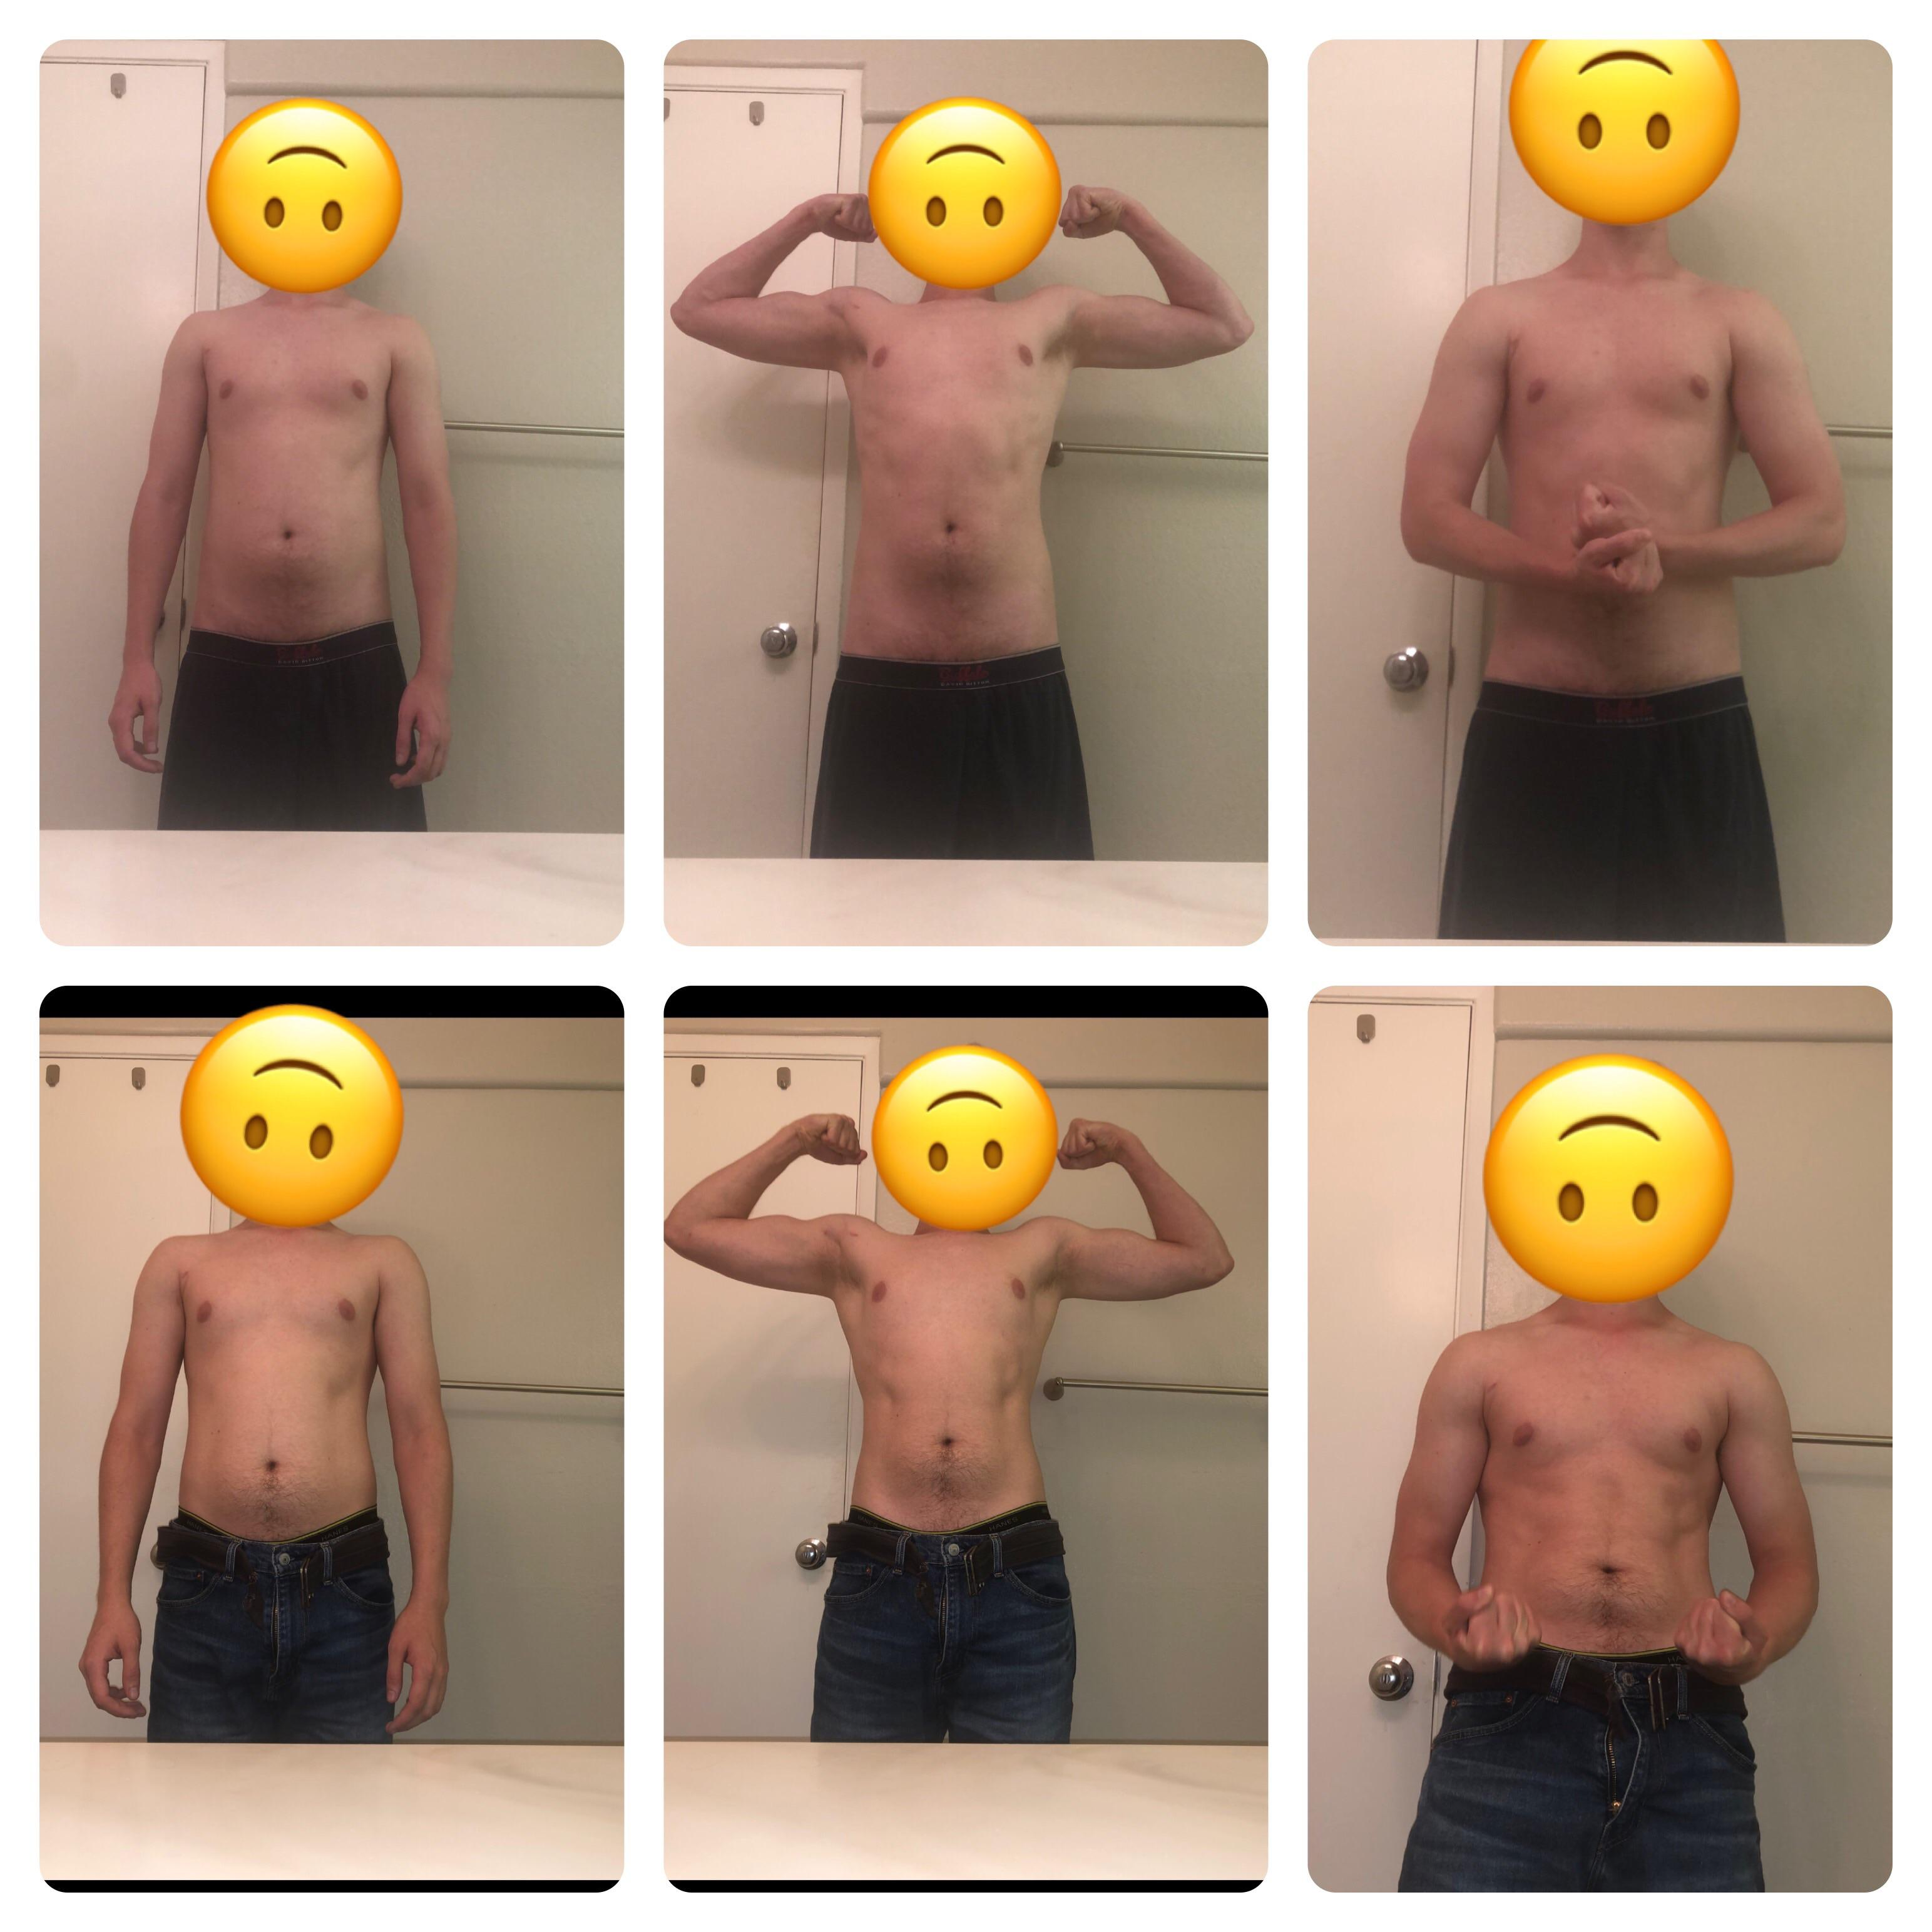 Before and After 5 lbs Muscle Gain 5 feet 11 Male 146 lbs to 151 lbs